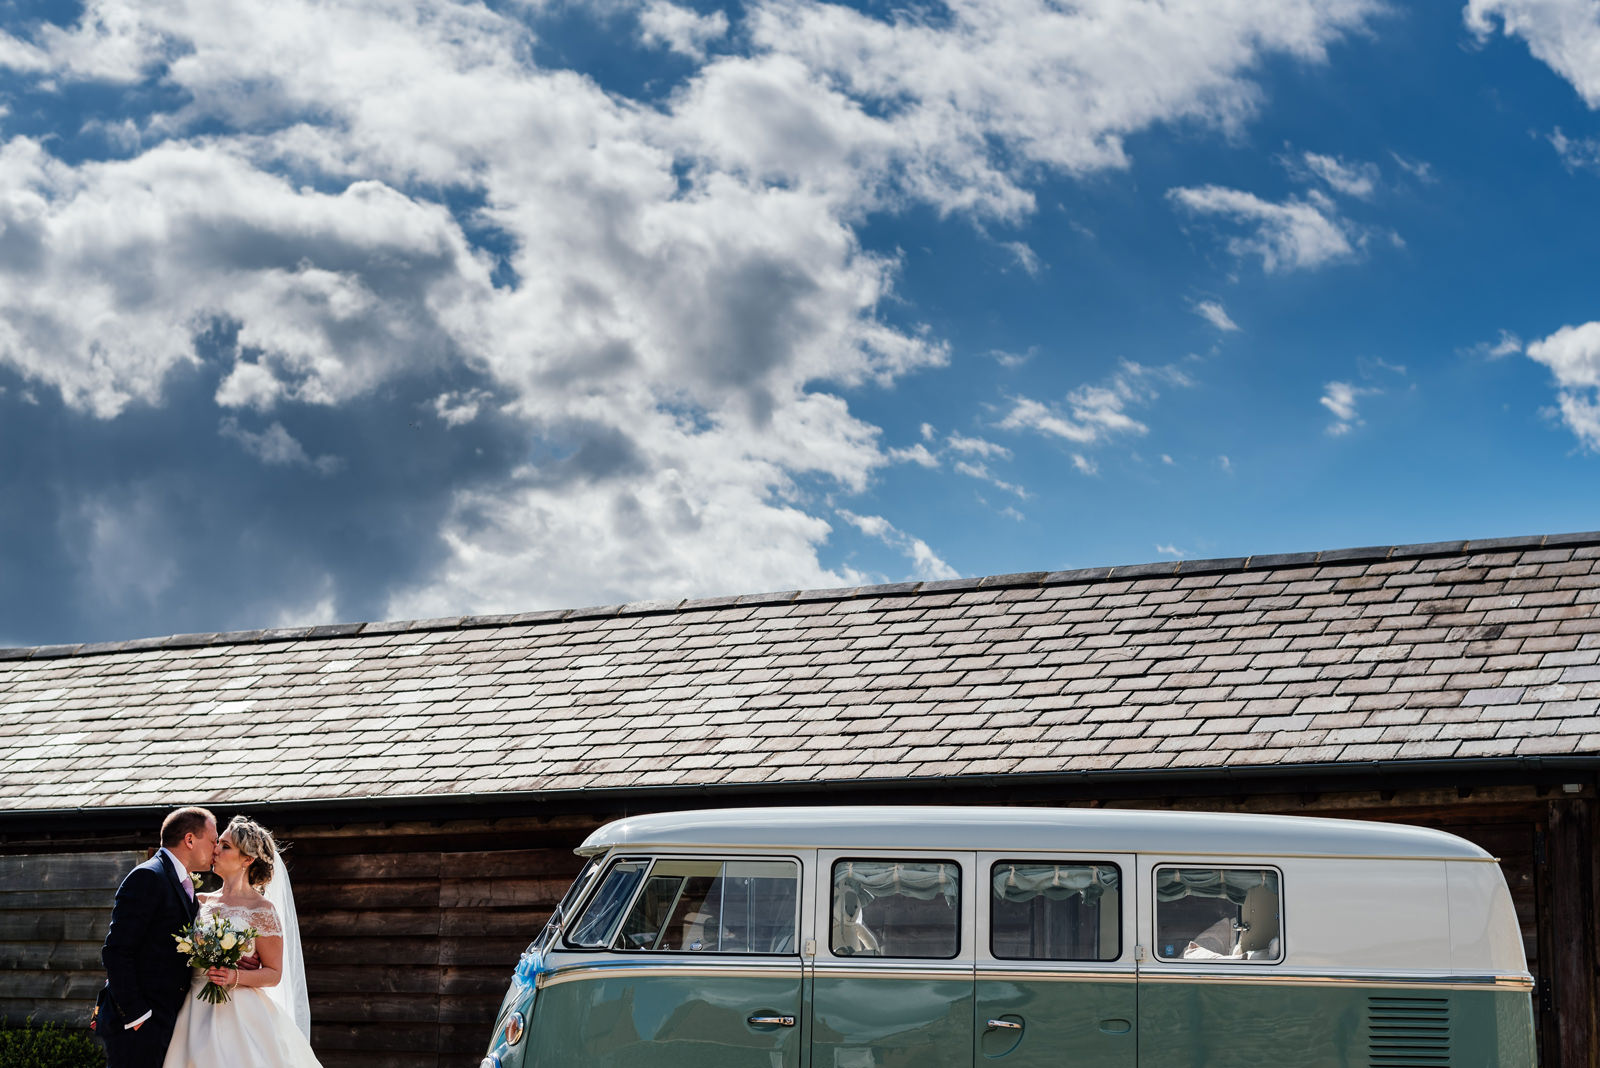 Camper van wedding photo